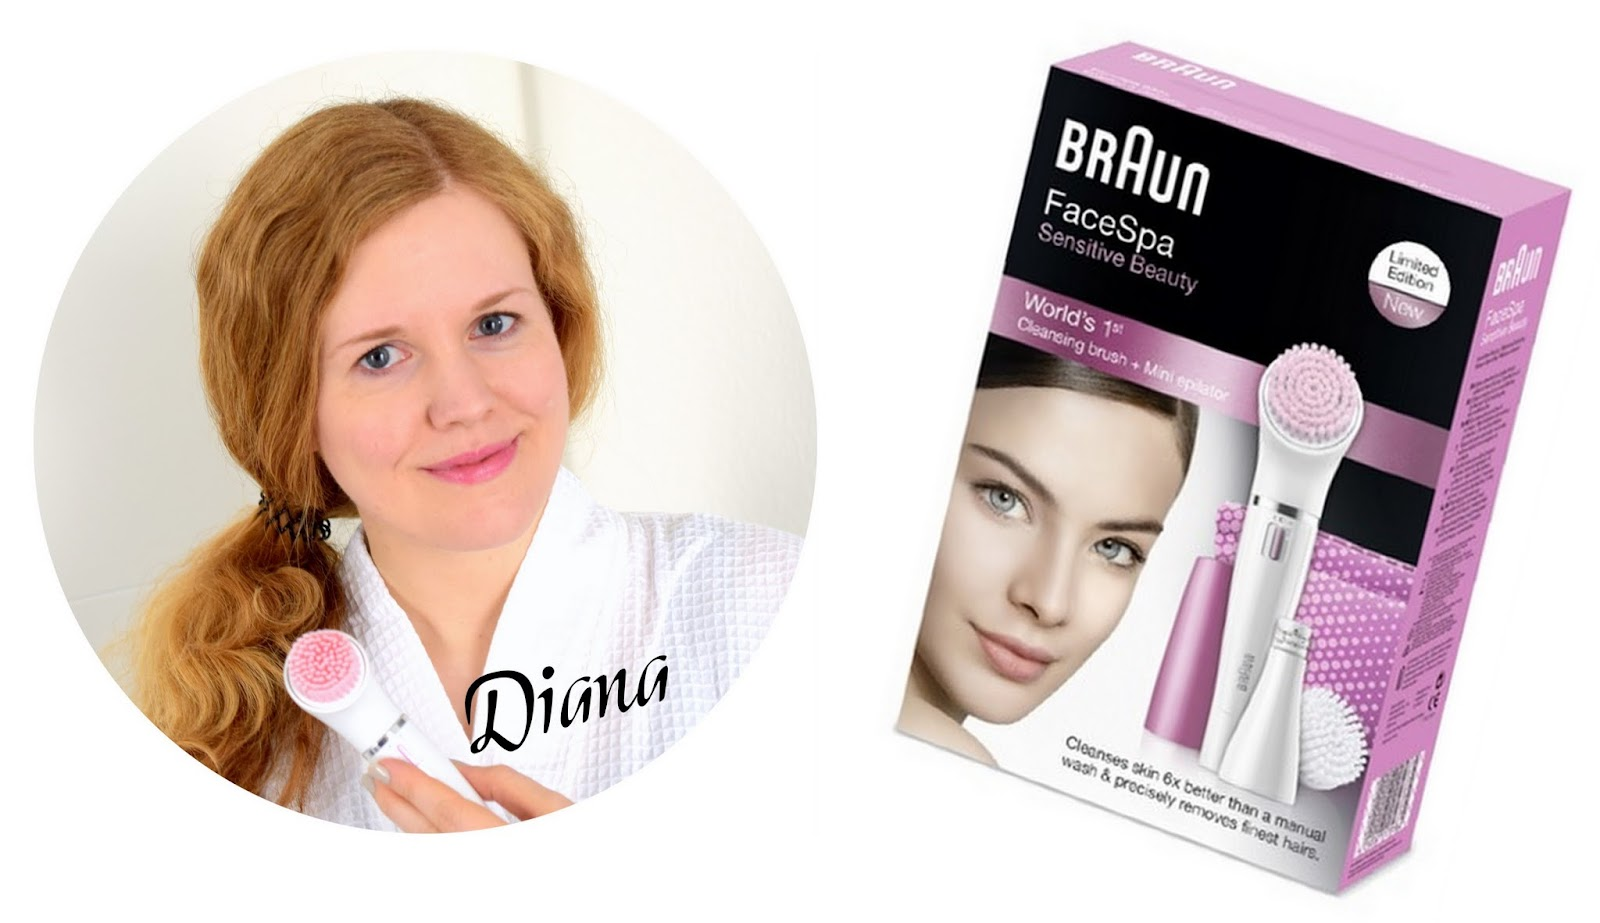 Braun FaceSpa Sensitive Beauty